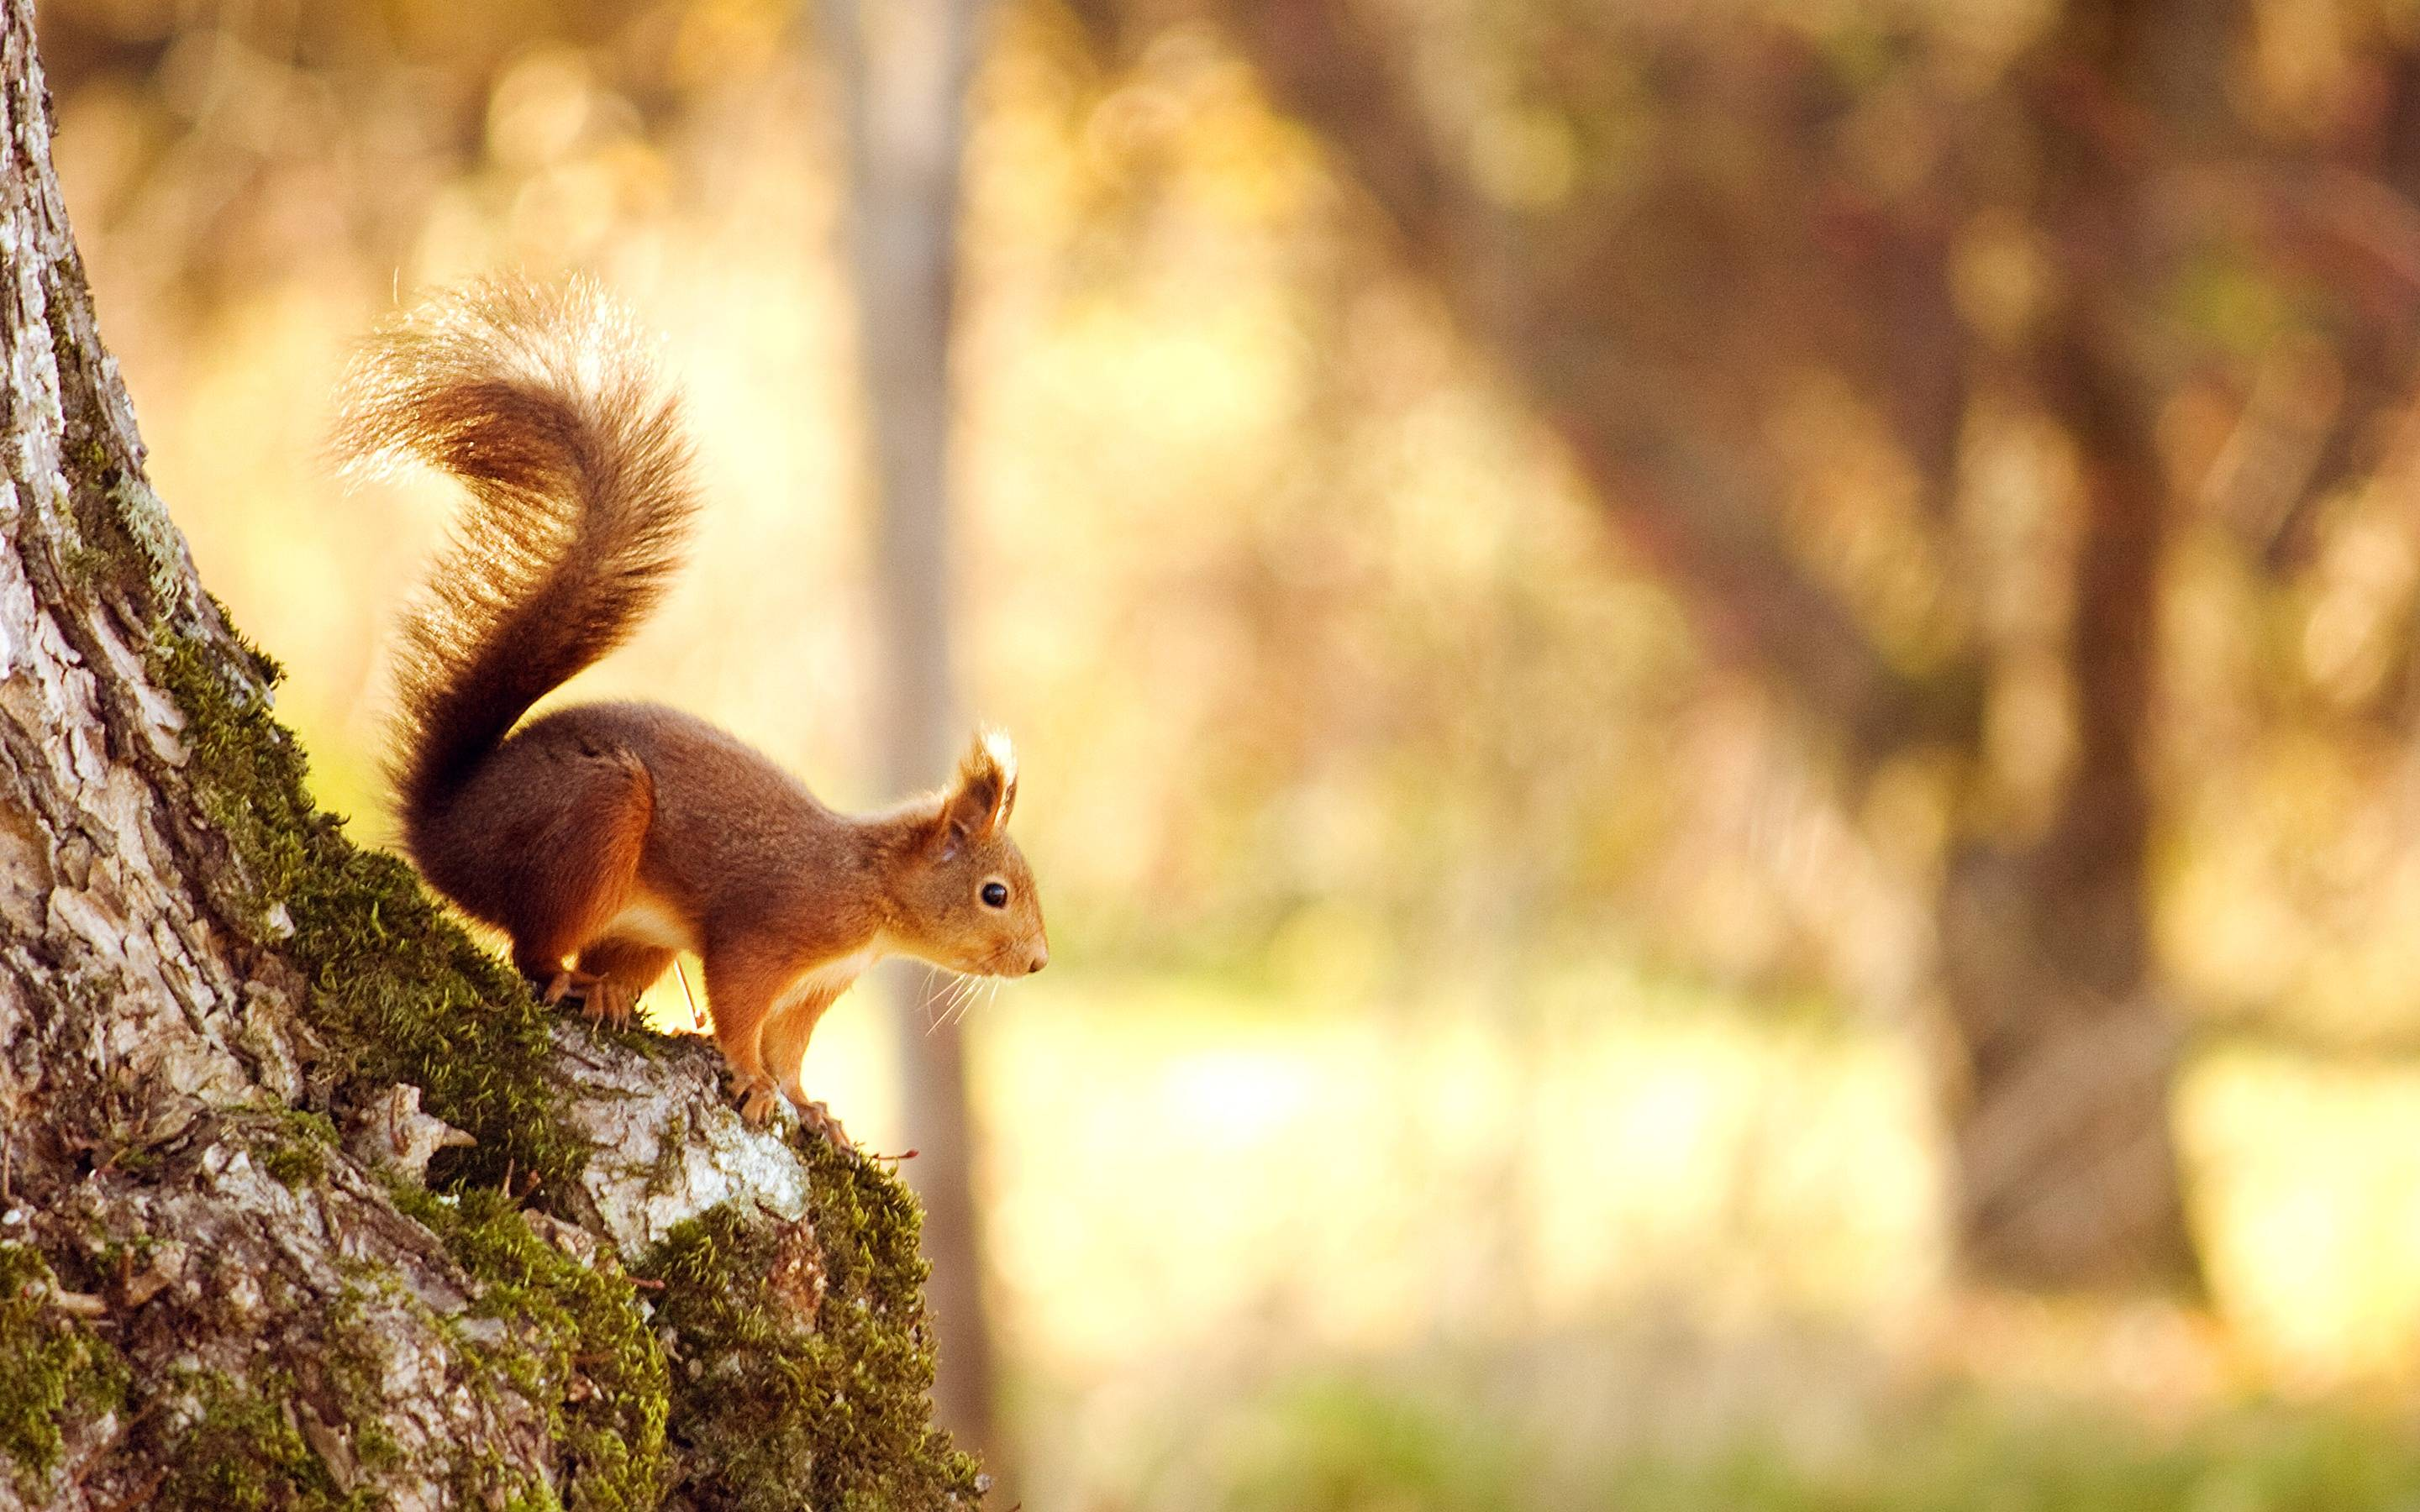 Squirrel Wallpapers | HD Wallpapers